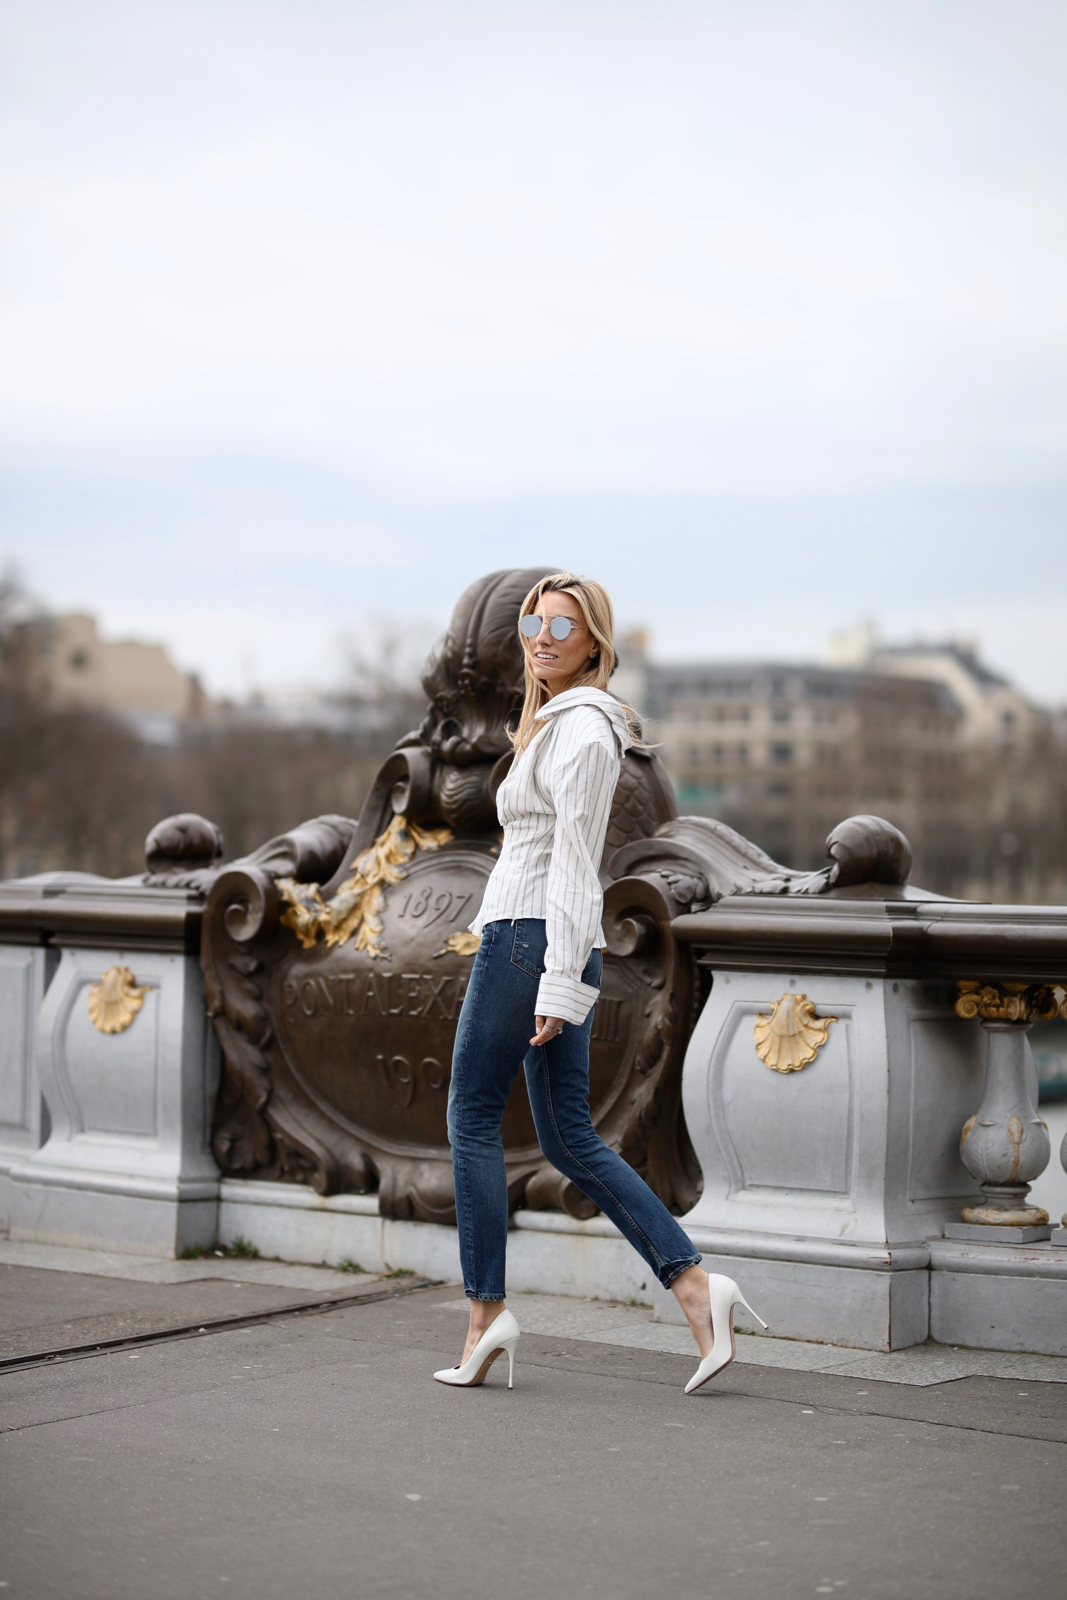 Alexander III Bridge - Paris, Travel, Jacquemus top, Grlfrnd Denim, White pumps, paris travel